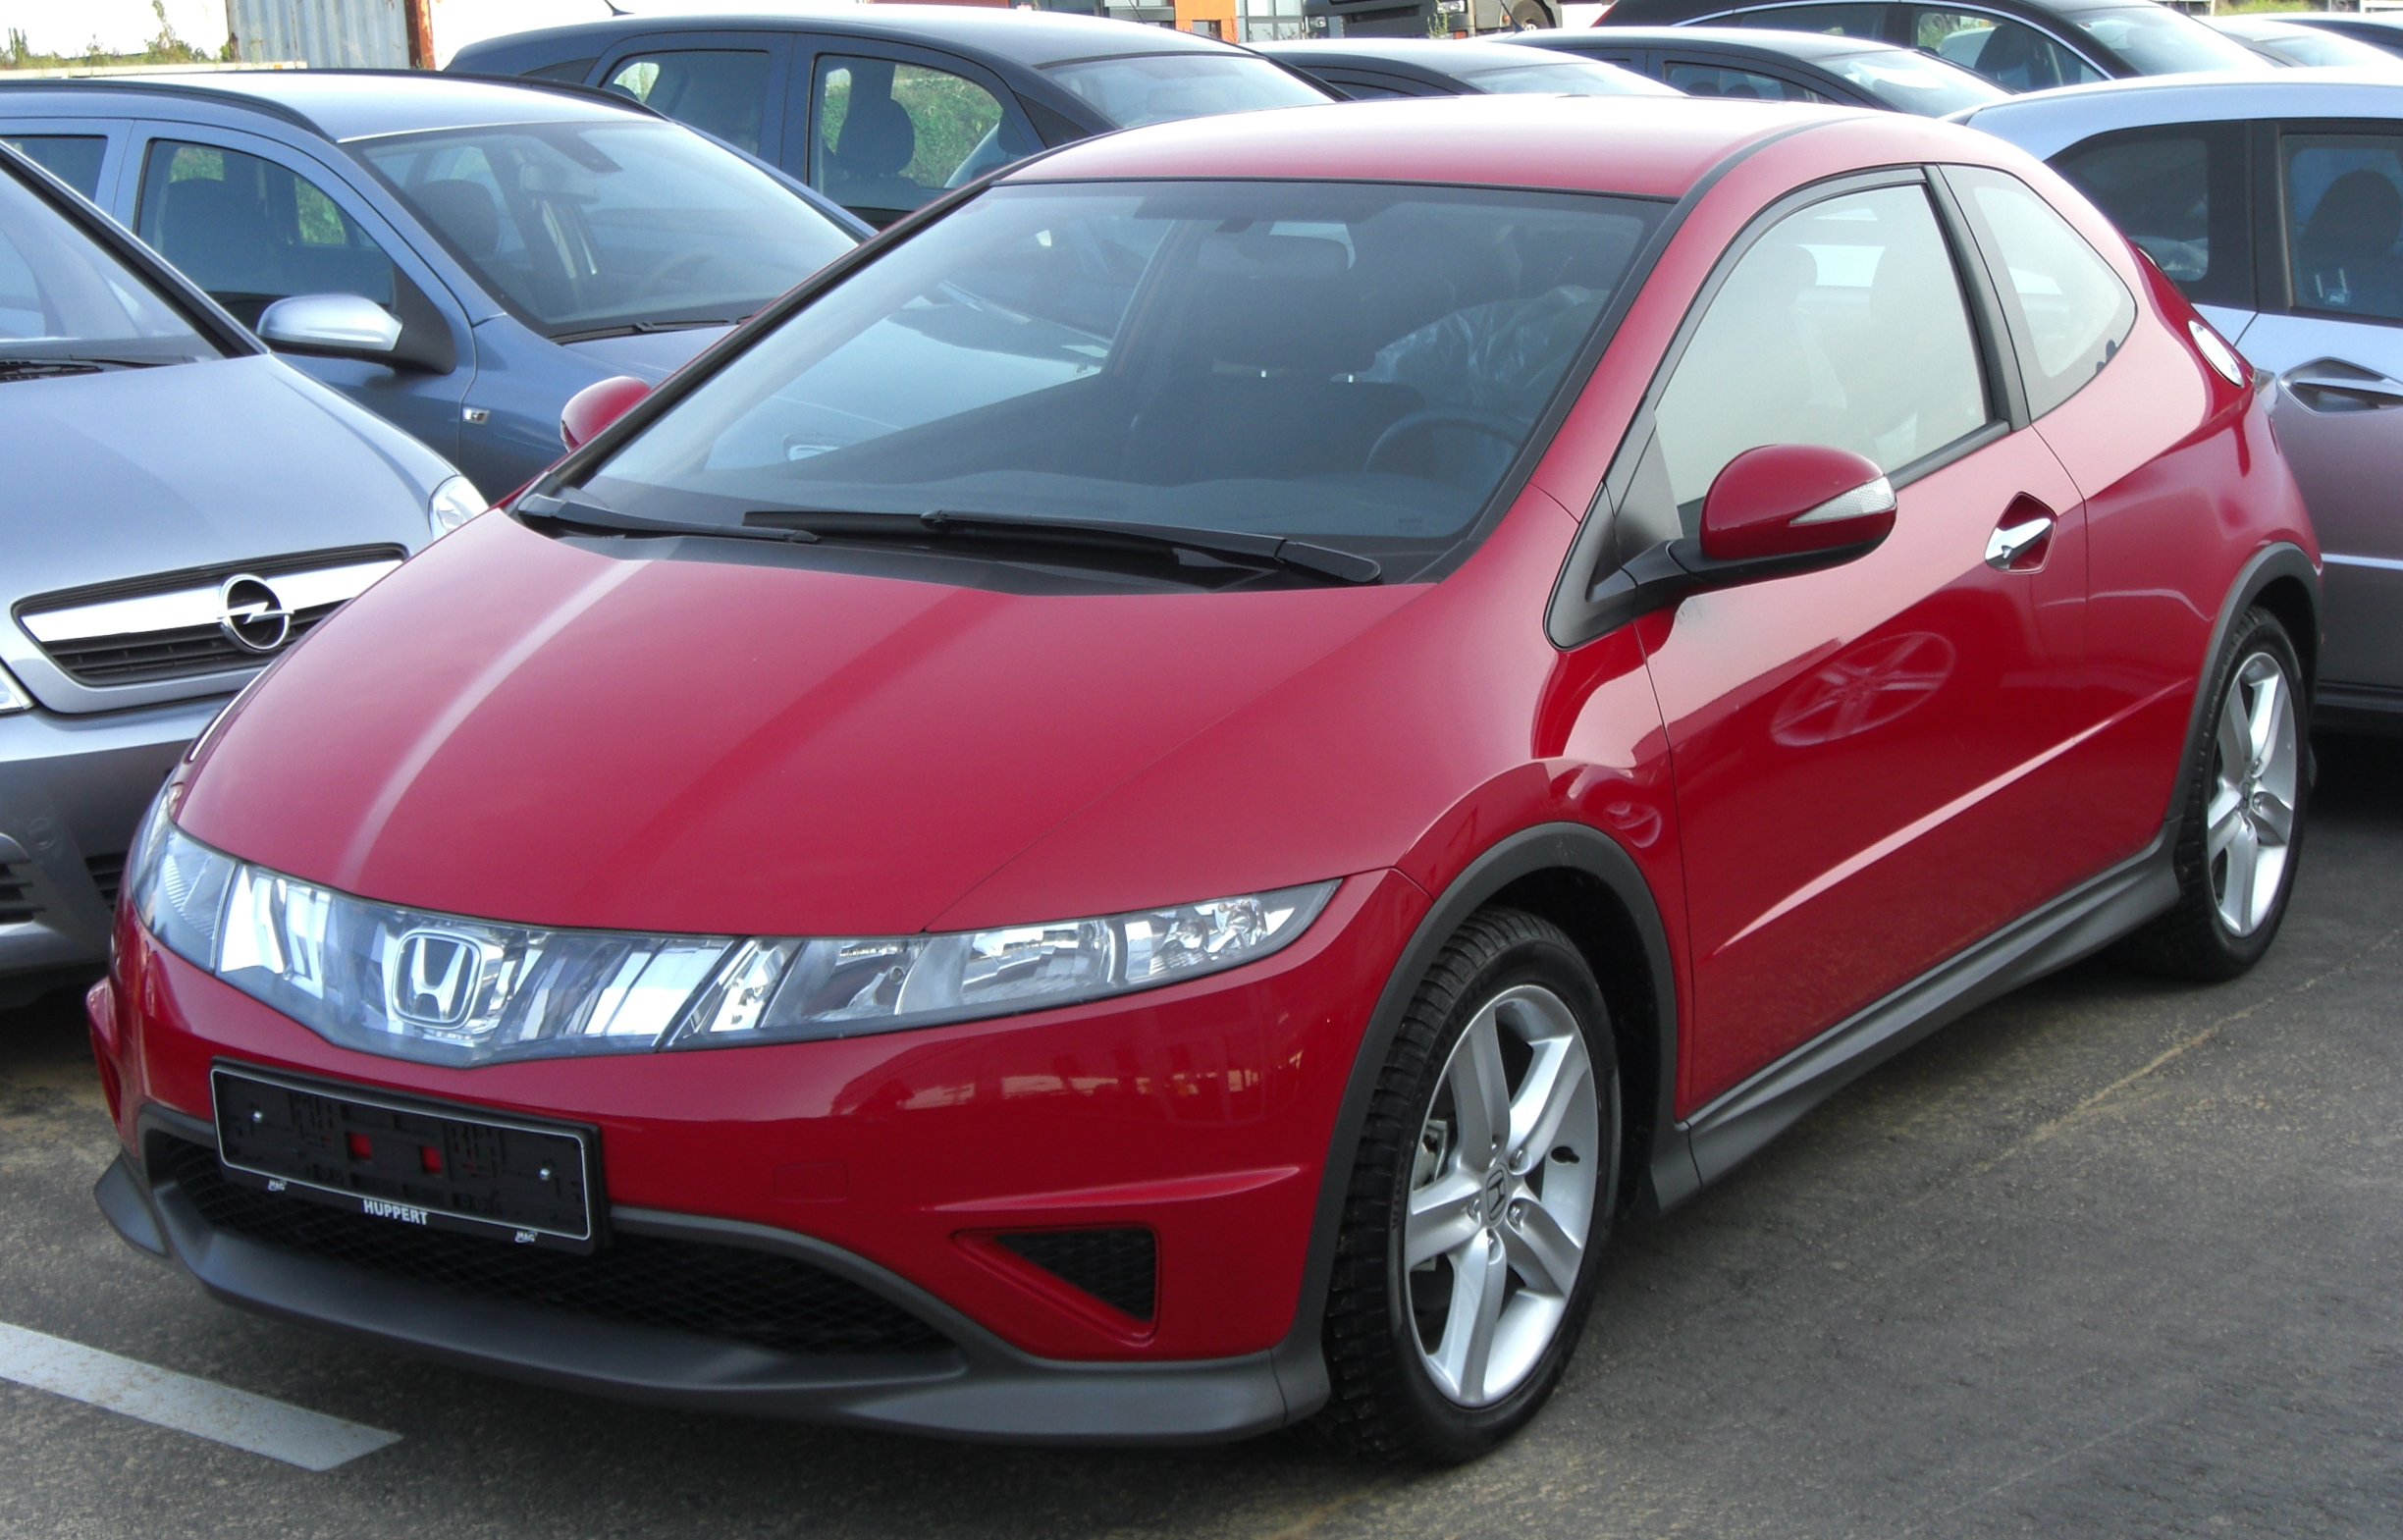 File:Honda Civic Type S front.JPG